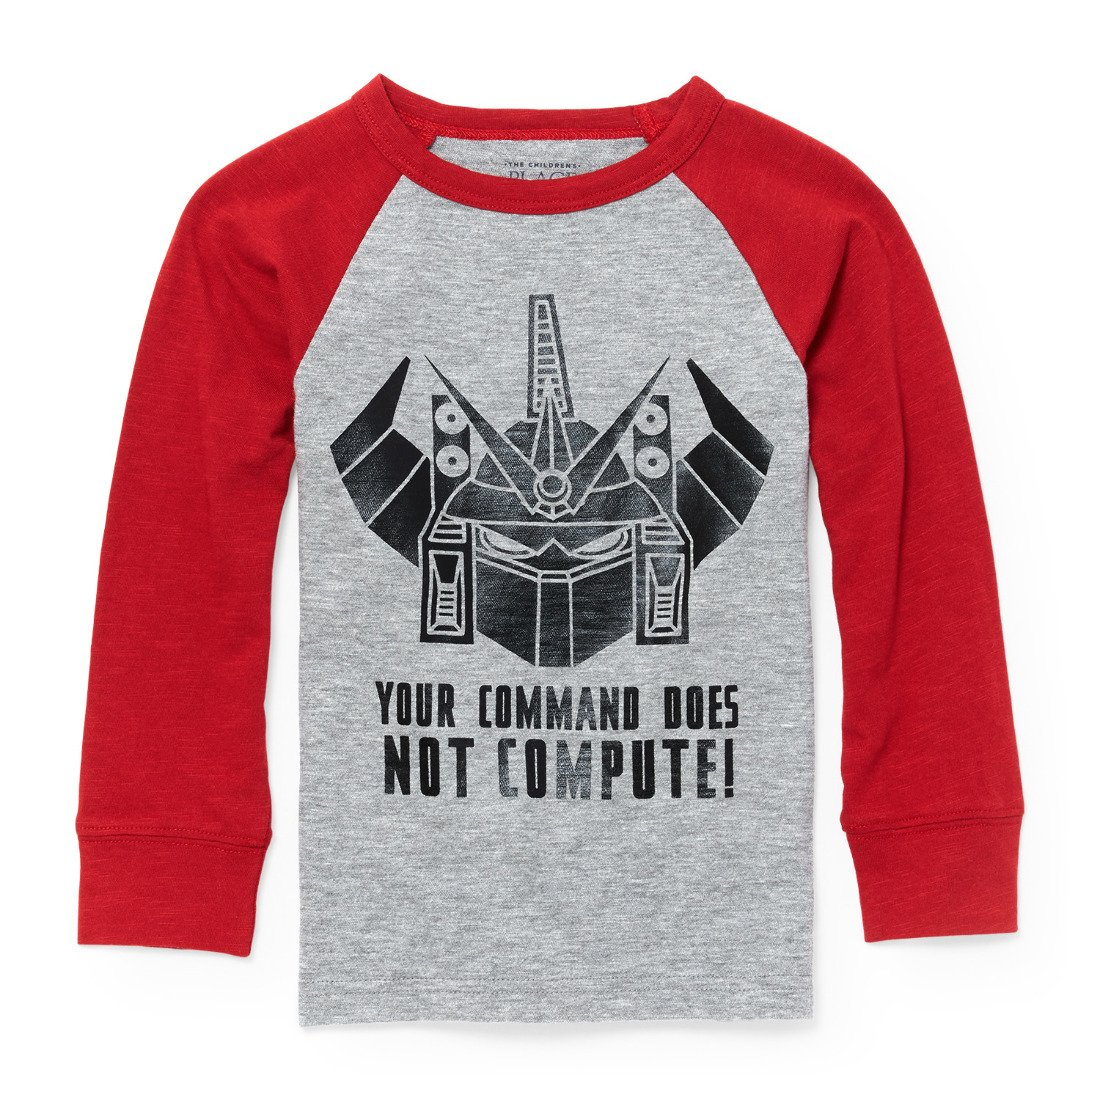 The Children's Place Baby Boys' December Raglan Graphic Long Sleeve Knit Top The Children' s Place Children' s Apparel